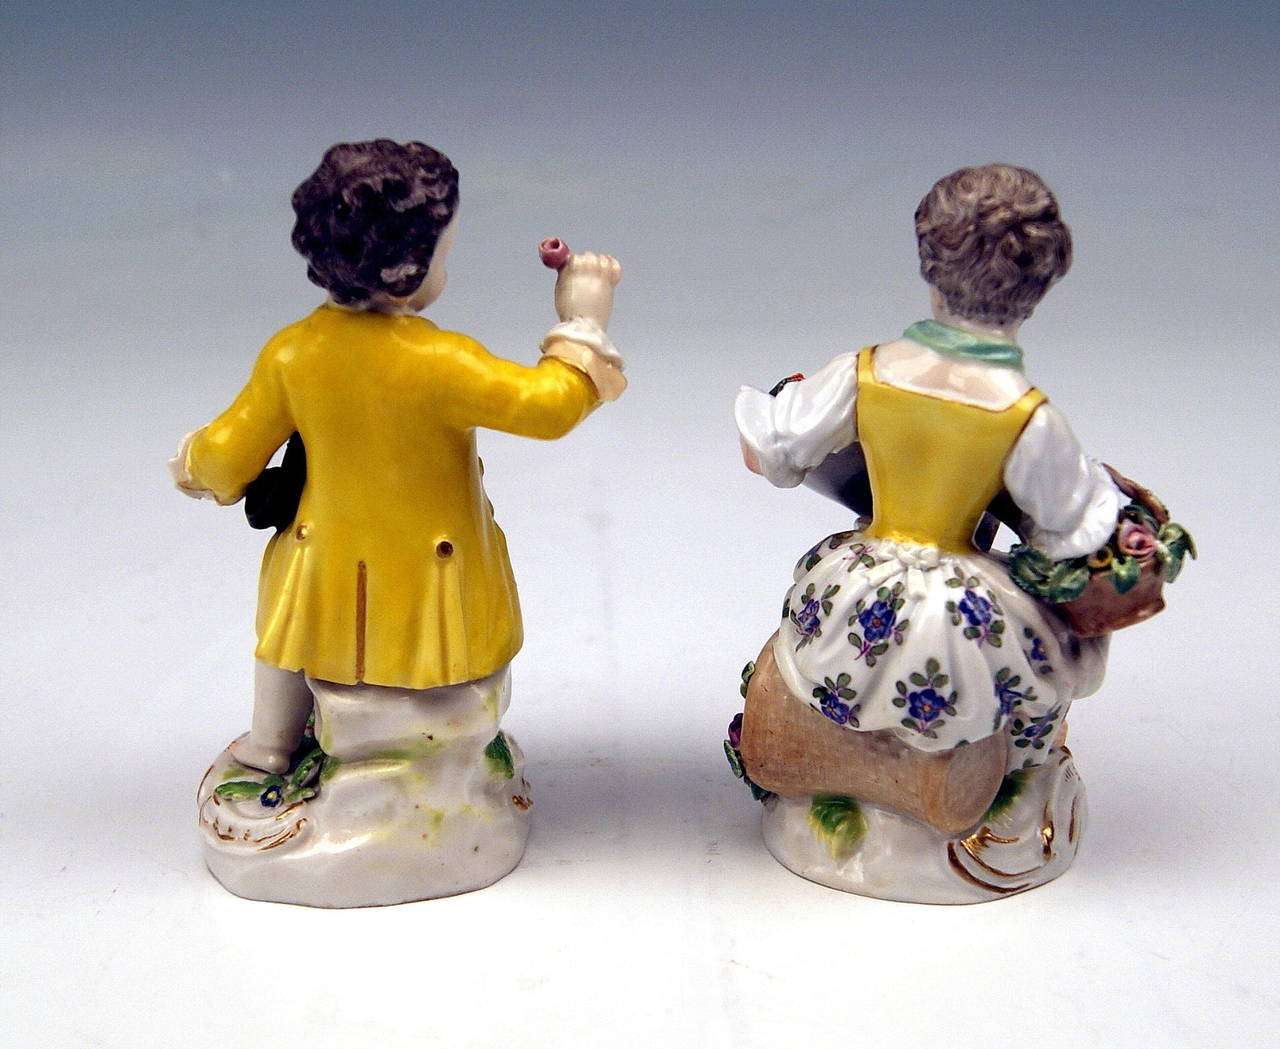 Painted Meissen Pair of Gardener Child Rococo Figurines, Model 17 by Kaendler, 1870 For Sale